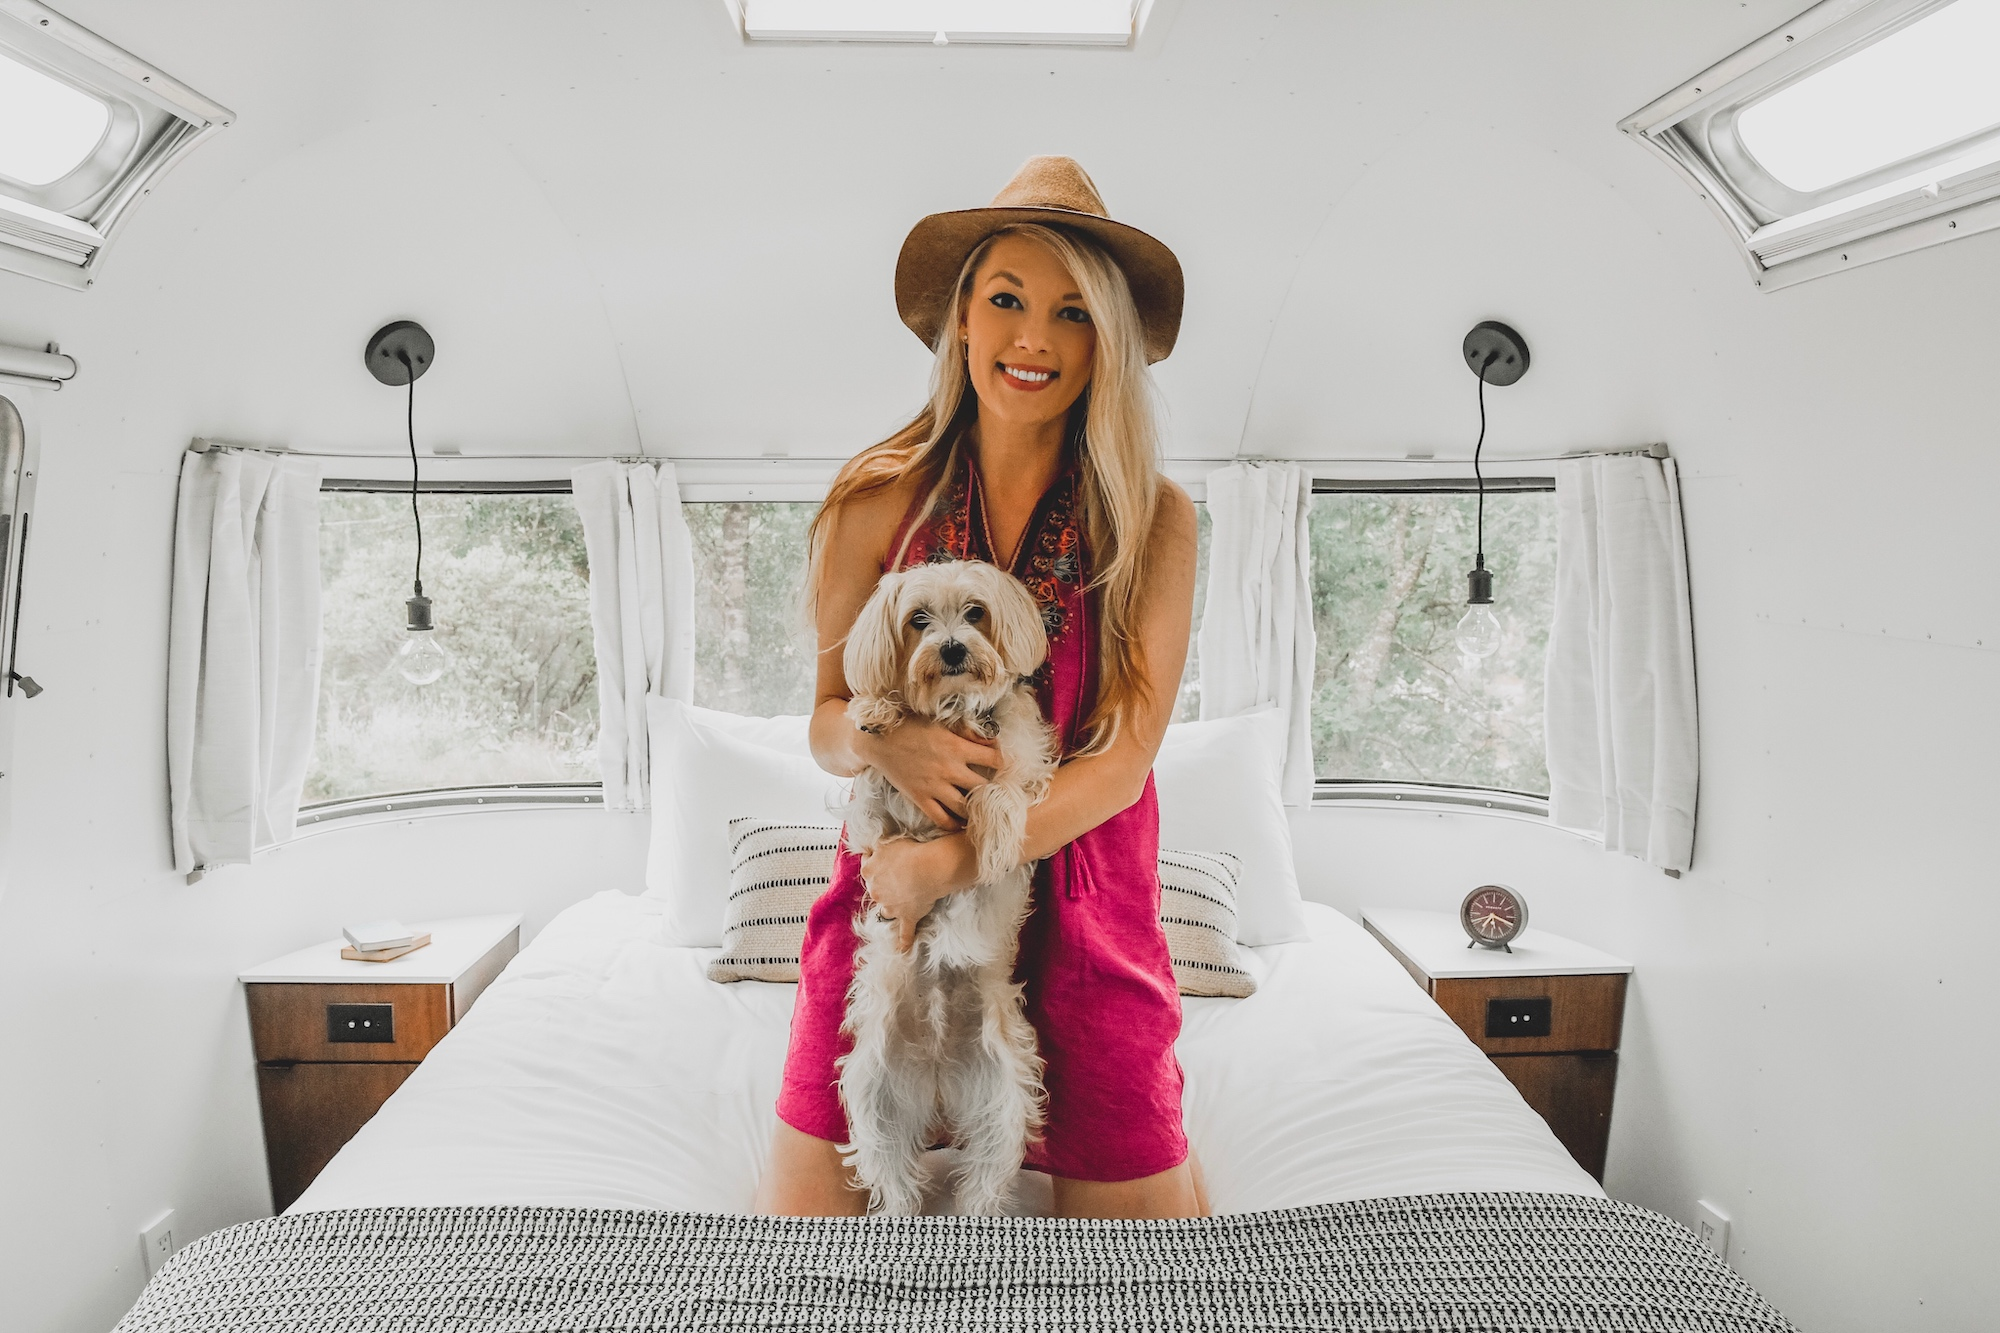 Autocamp Yosemite Airstream Pet-Friendly Glamping | Cedar + Surf